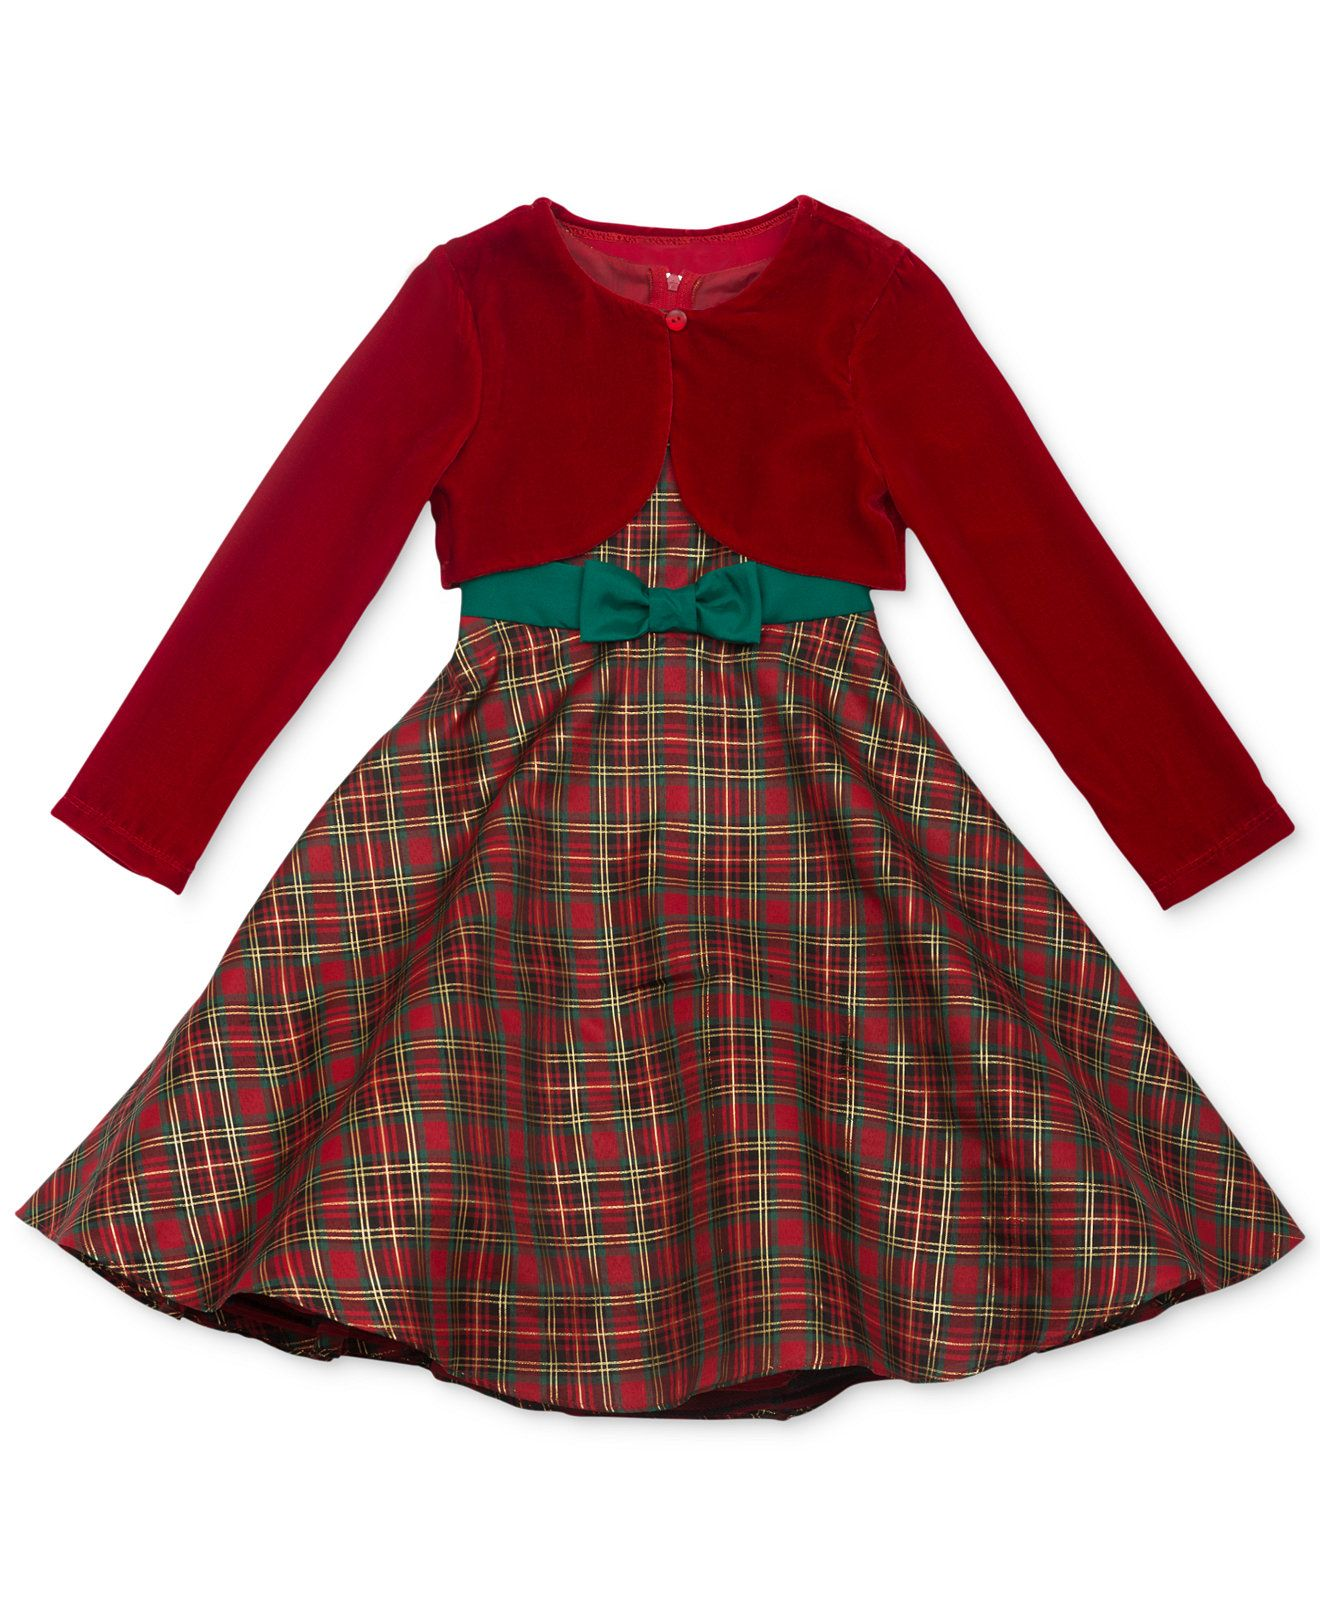 Rare Editions Girls Tartan Plaid Dress and Bolero Jacket Kids